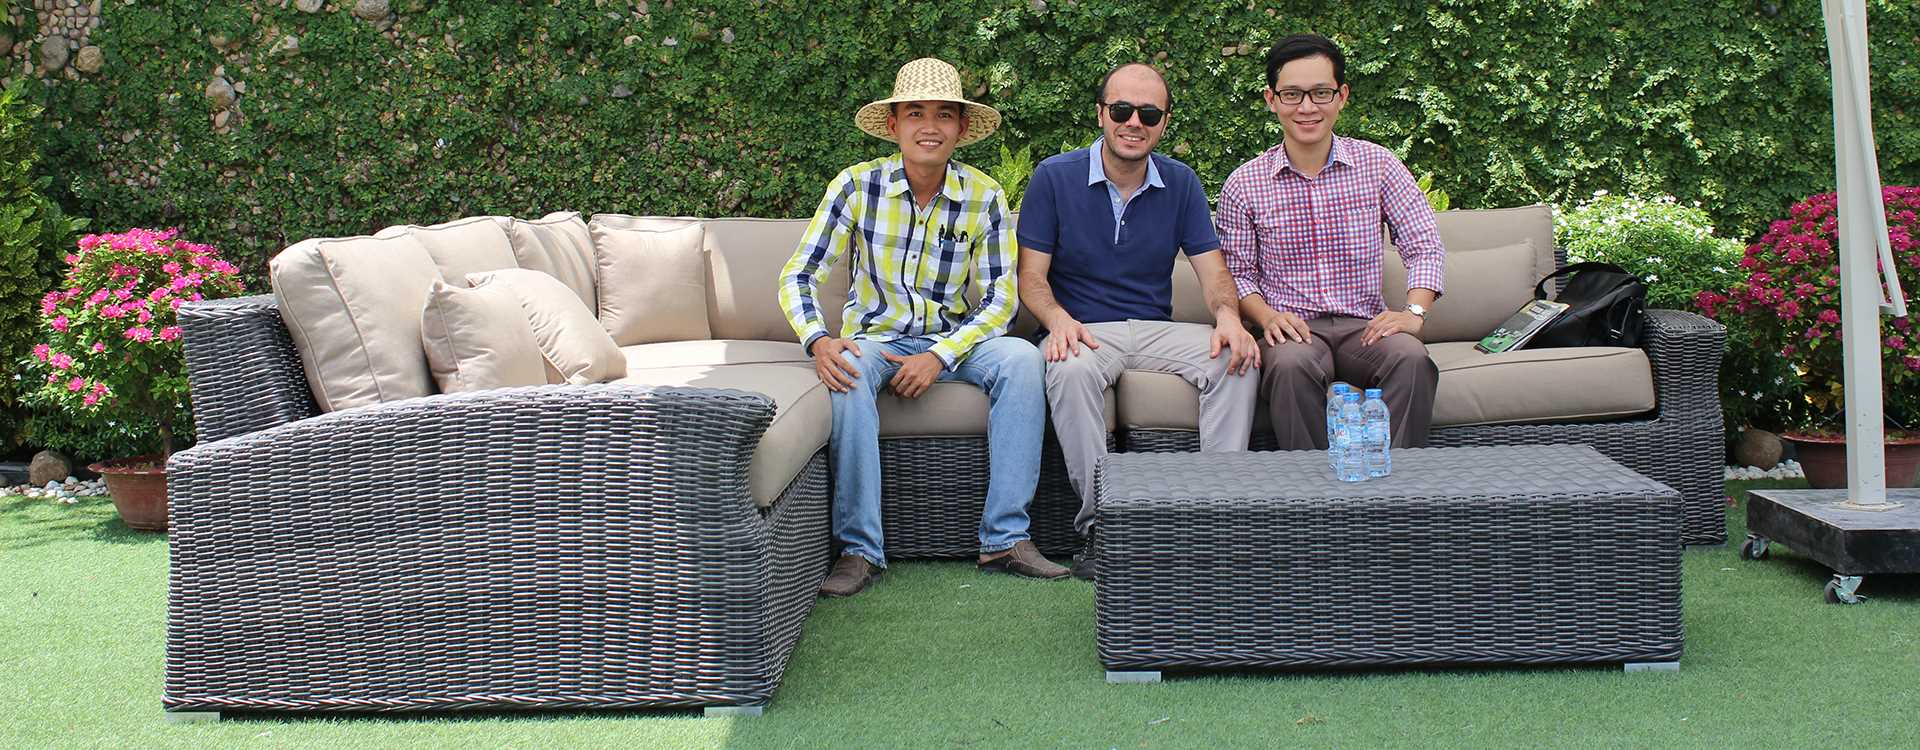 ATC Wicker Patio Furniture Manufacturer Factory Visiting